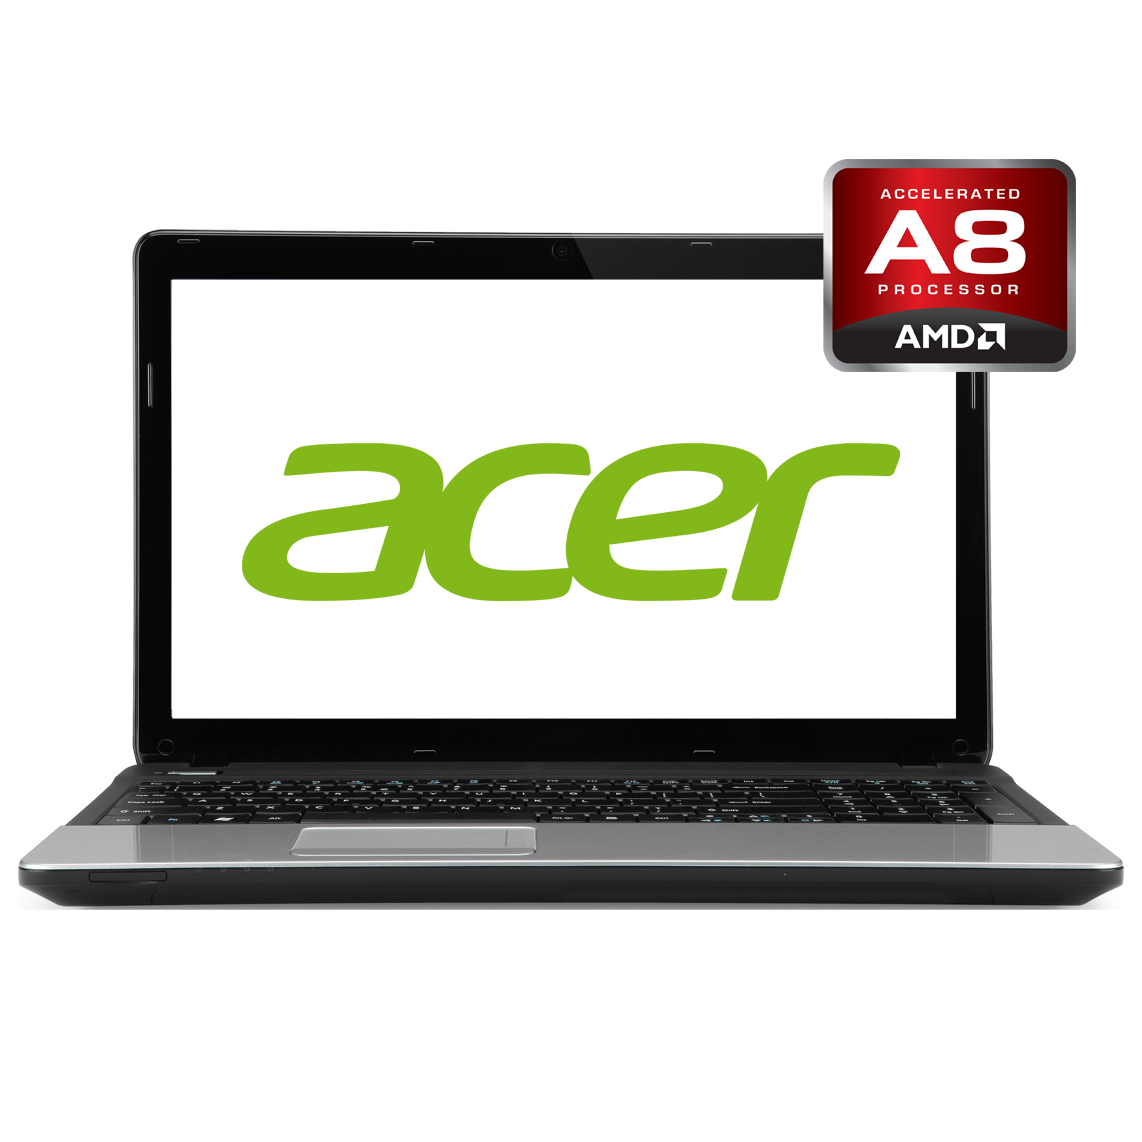 Acer - 15 inch AMD A8